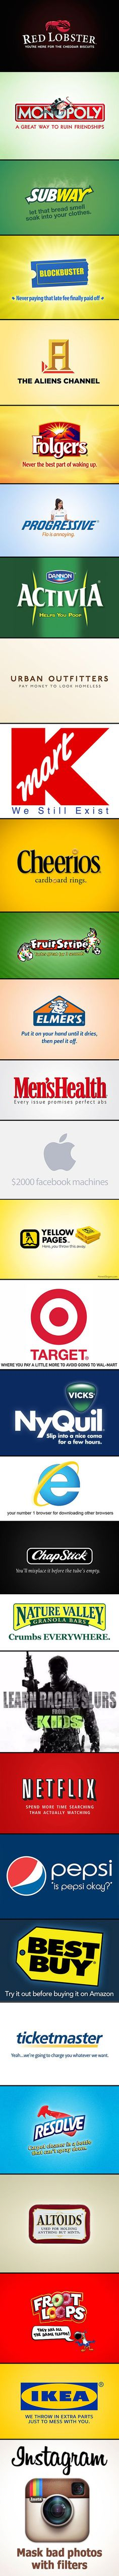 30 Funny and Honest Company Logos, Slogans